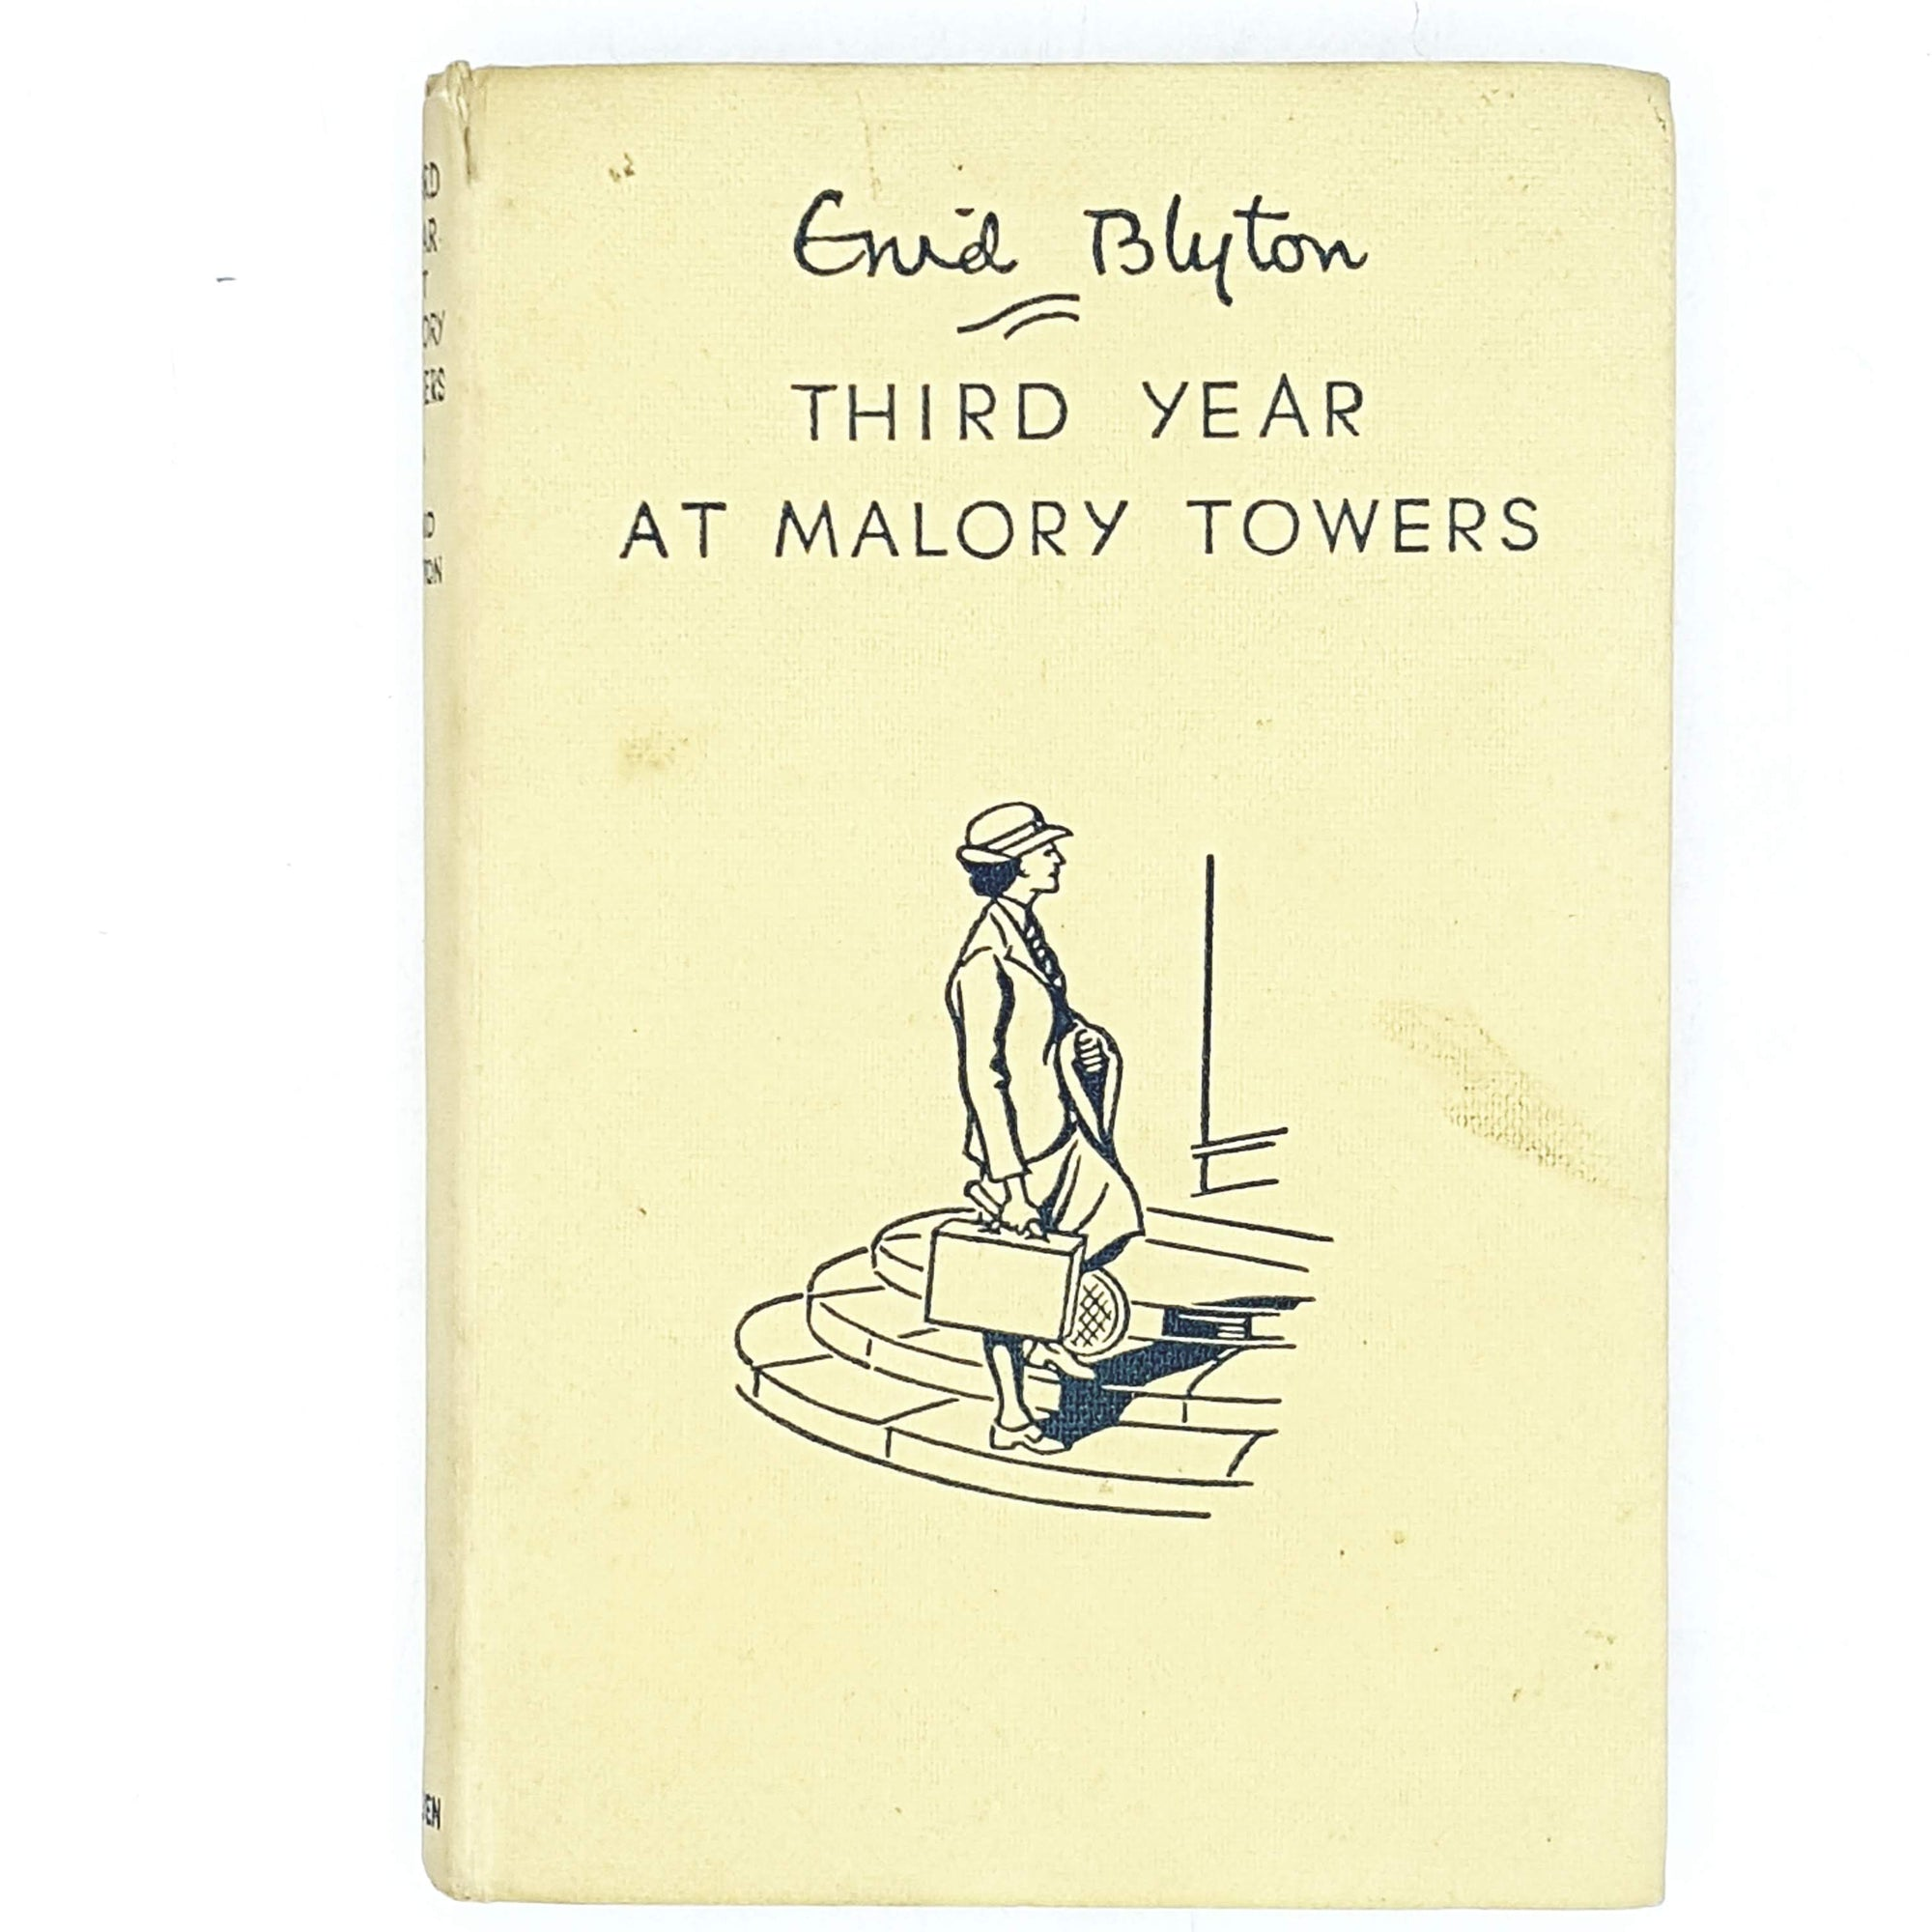 Illustrated Enid Blyton's Third Year at Malory Towers 1958